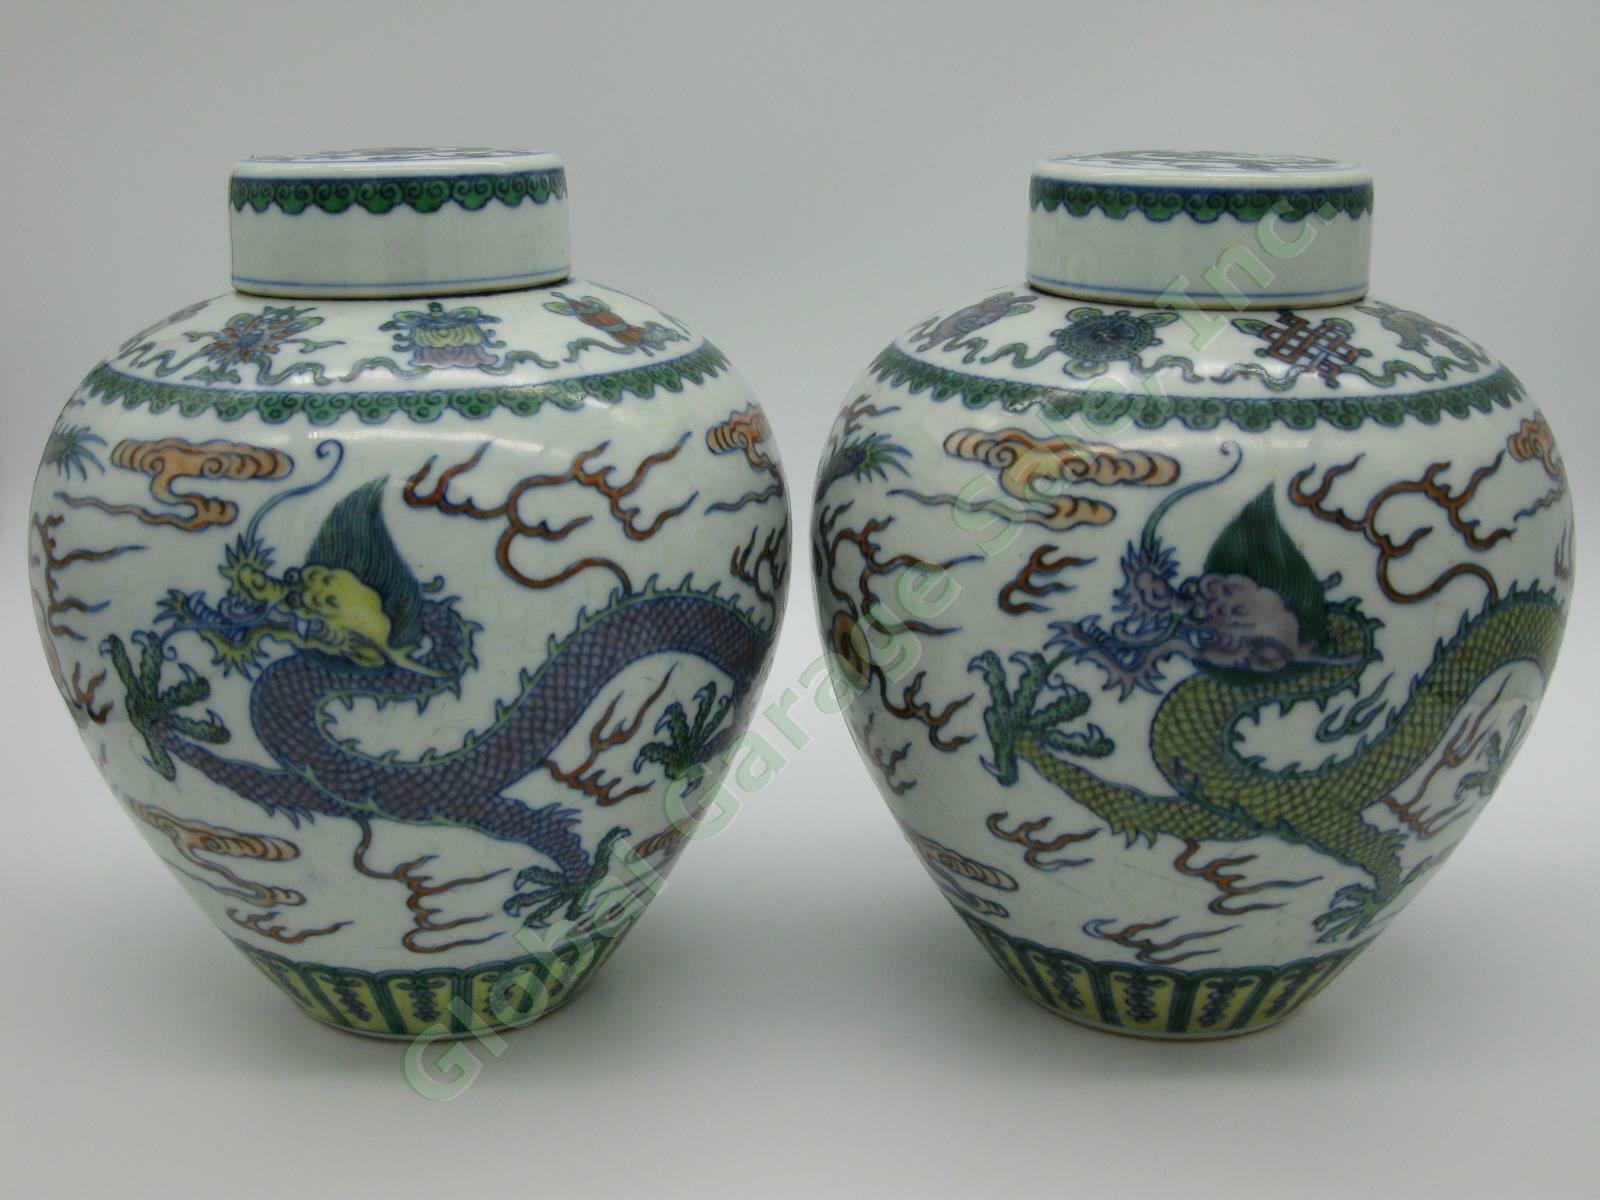 Pair Of Doucai Dragon Jars Sell For US $88,888.88 On Ebay USA